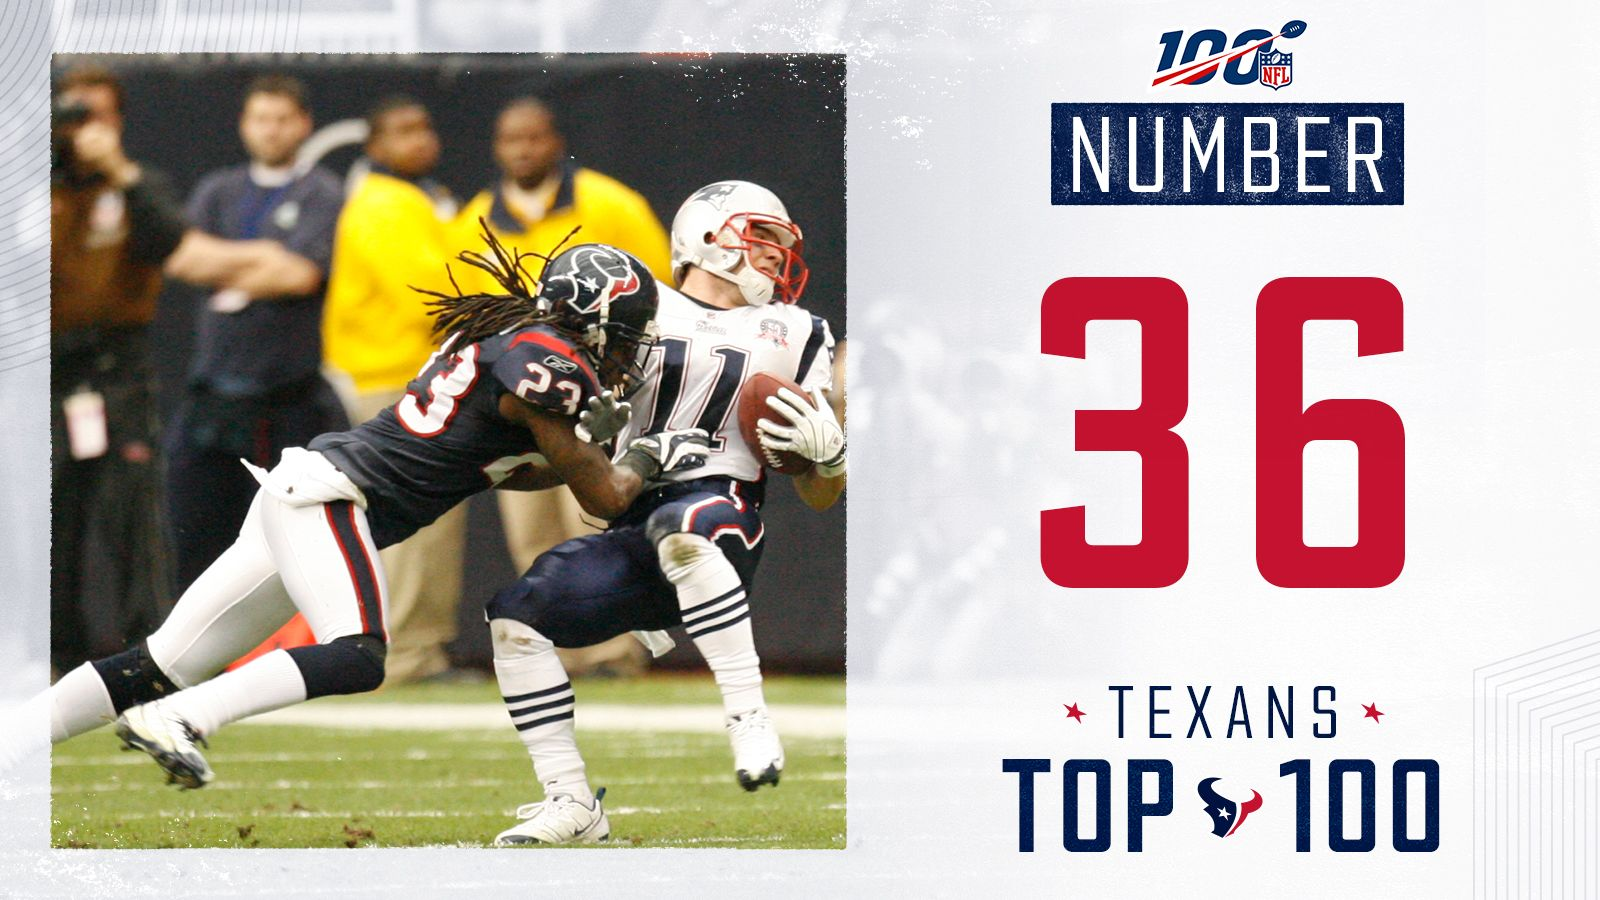 36_Texans beat Pats in 2009 - TWITTER